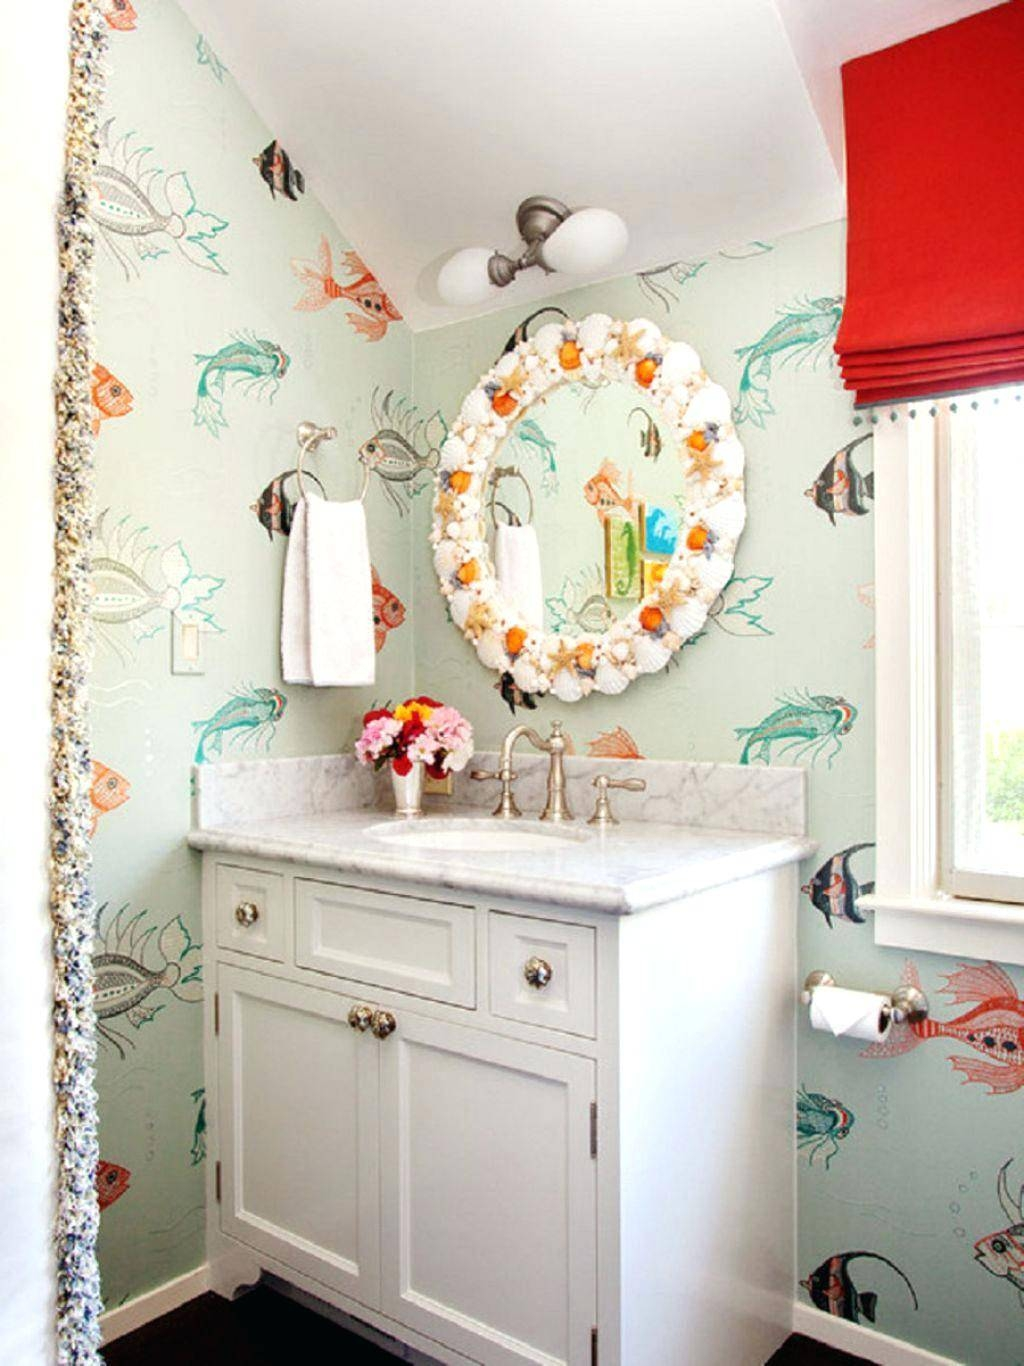 Kids Bathroom Wall Decals Bathroom Vibrant Red Roman Shade Also Intended For Best And Newest Fish Decals For Bathroom (Gallery 16 of 30)